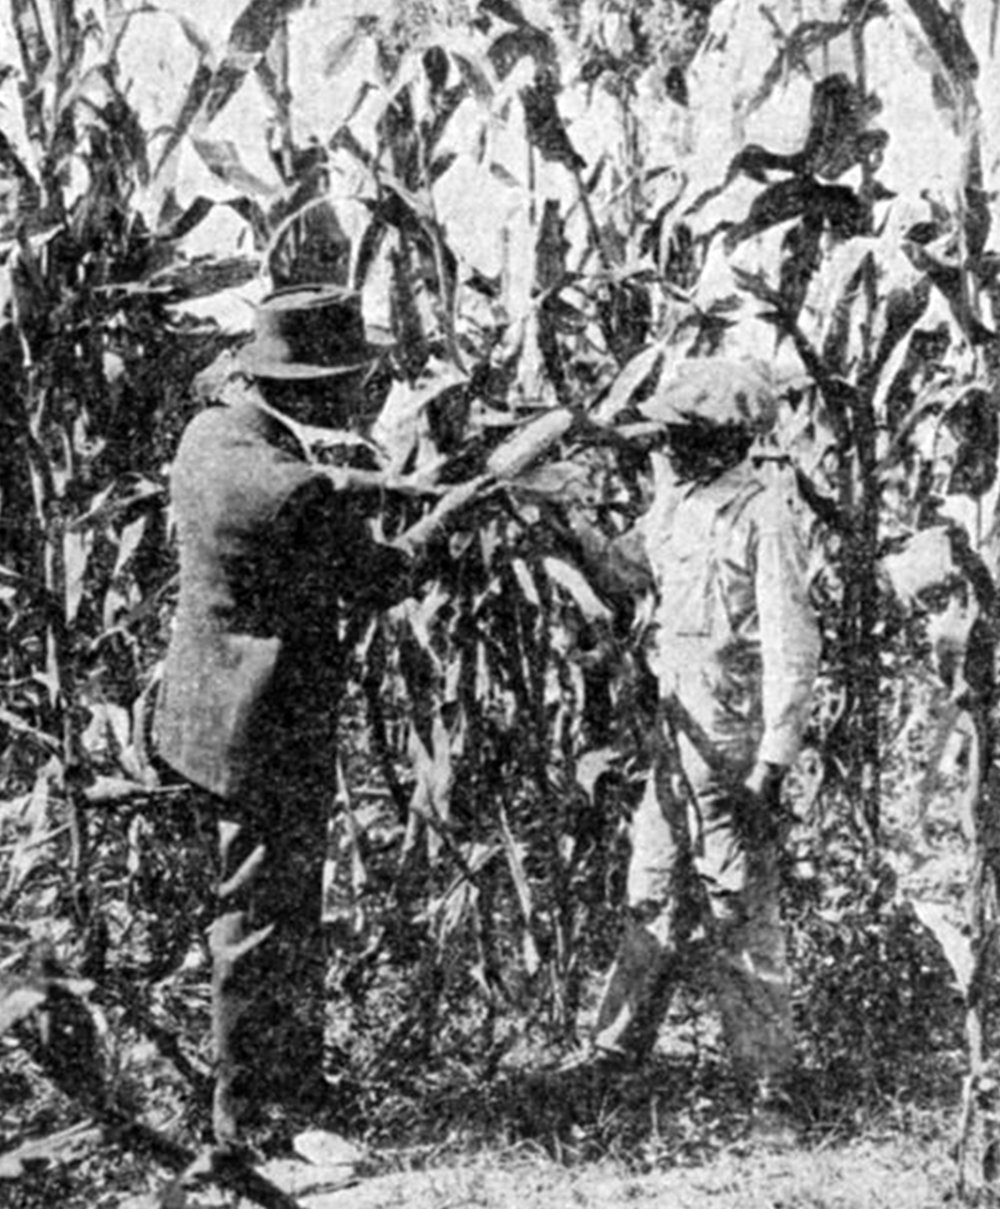 County Agent teaching Corn Selection, circa 1900, Courtesy of the New York Public Library